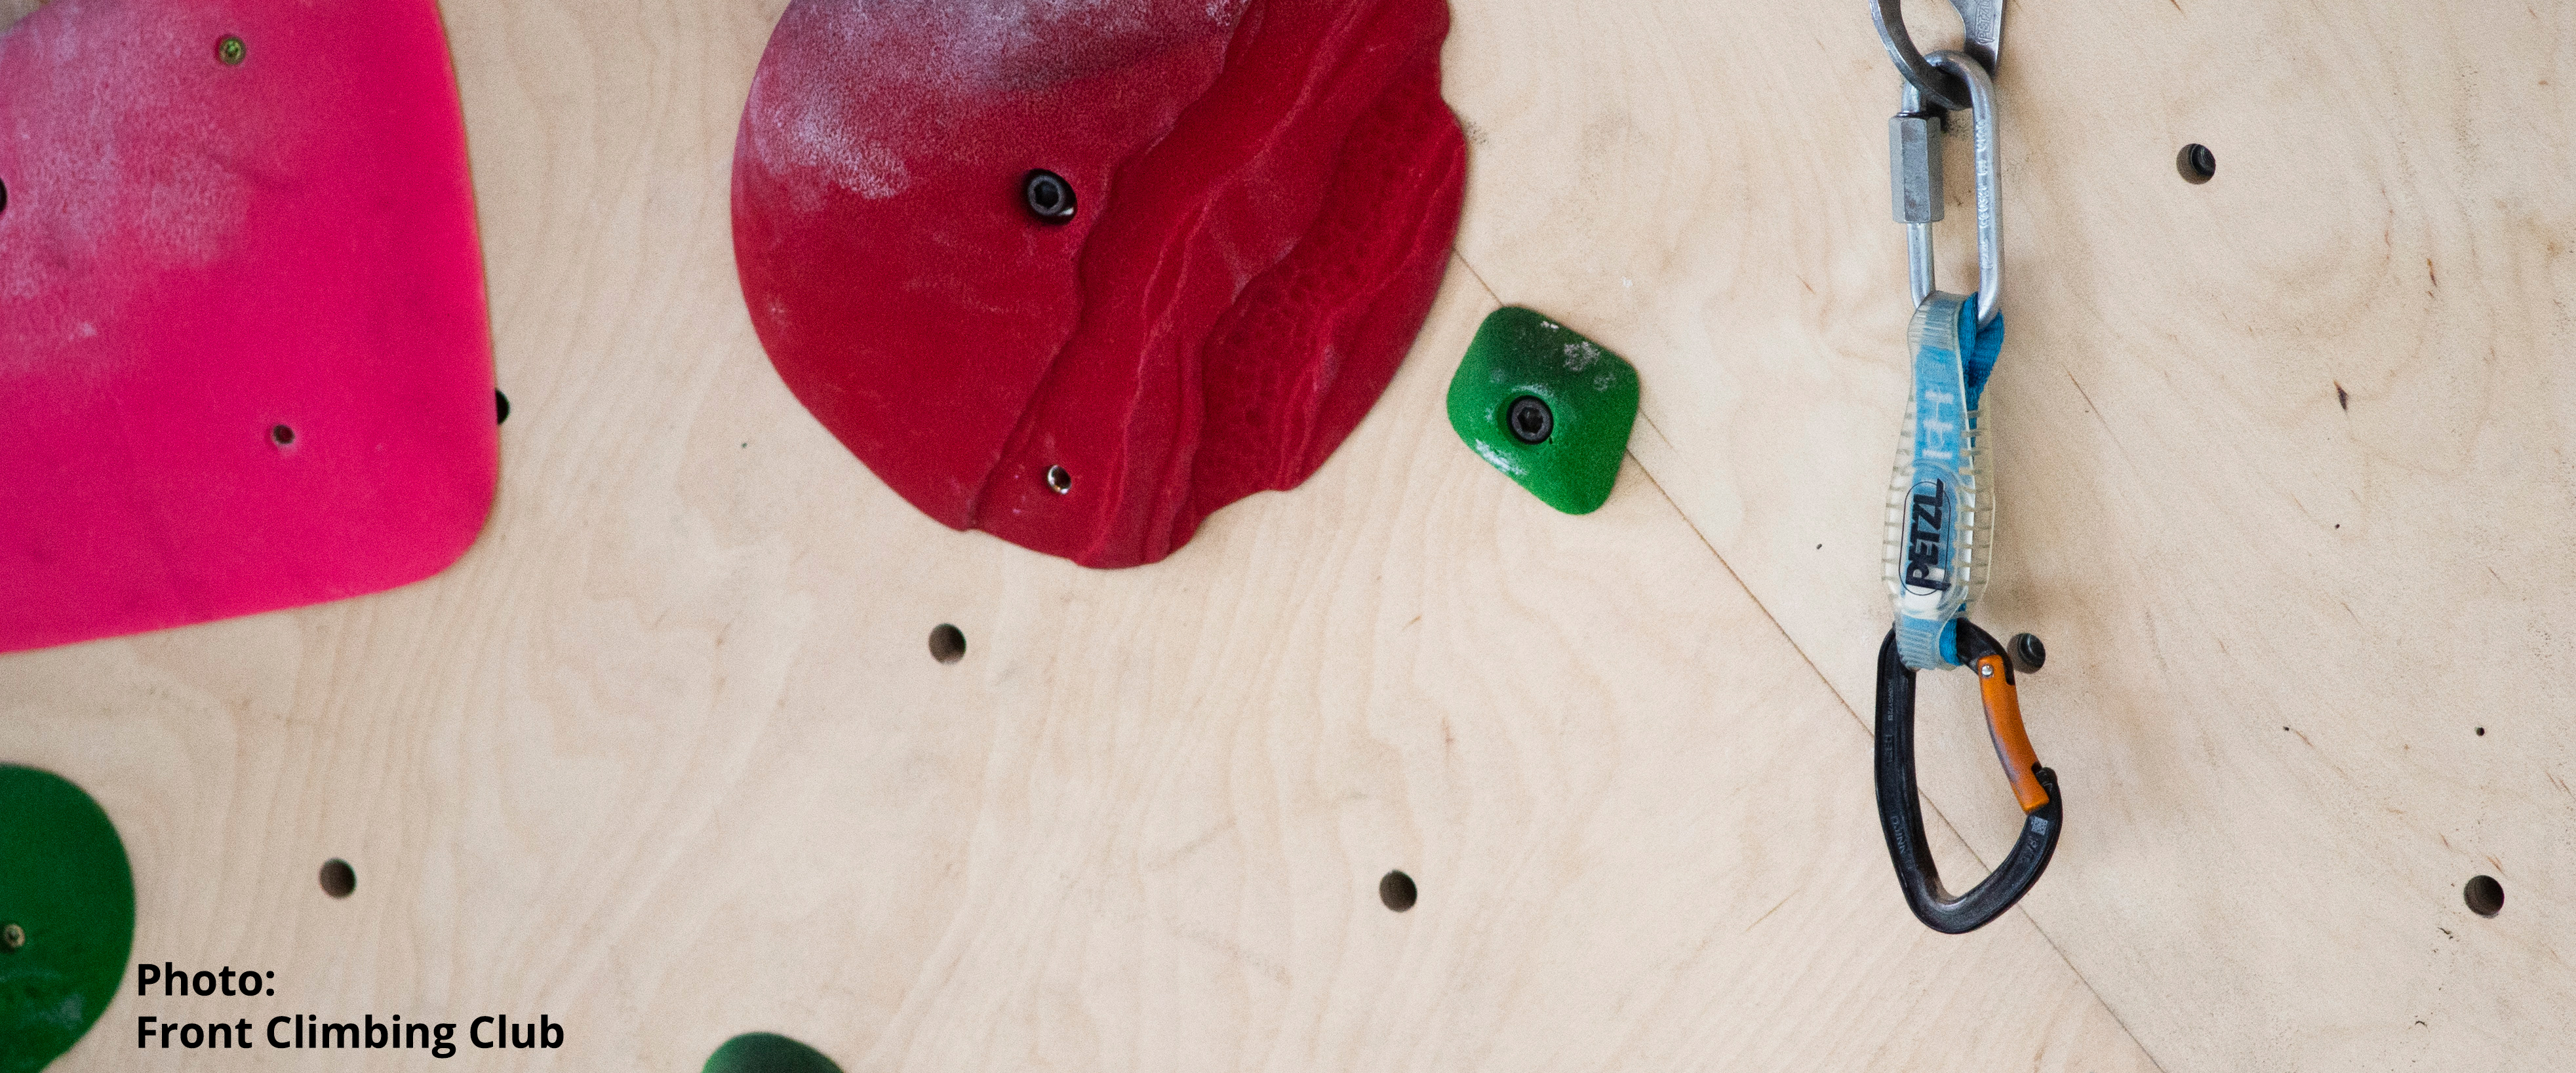 A route in a climbing gym with a quickdraw